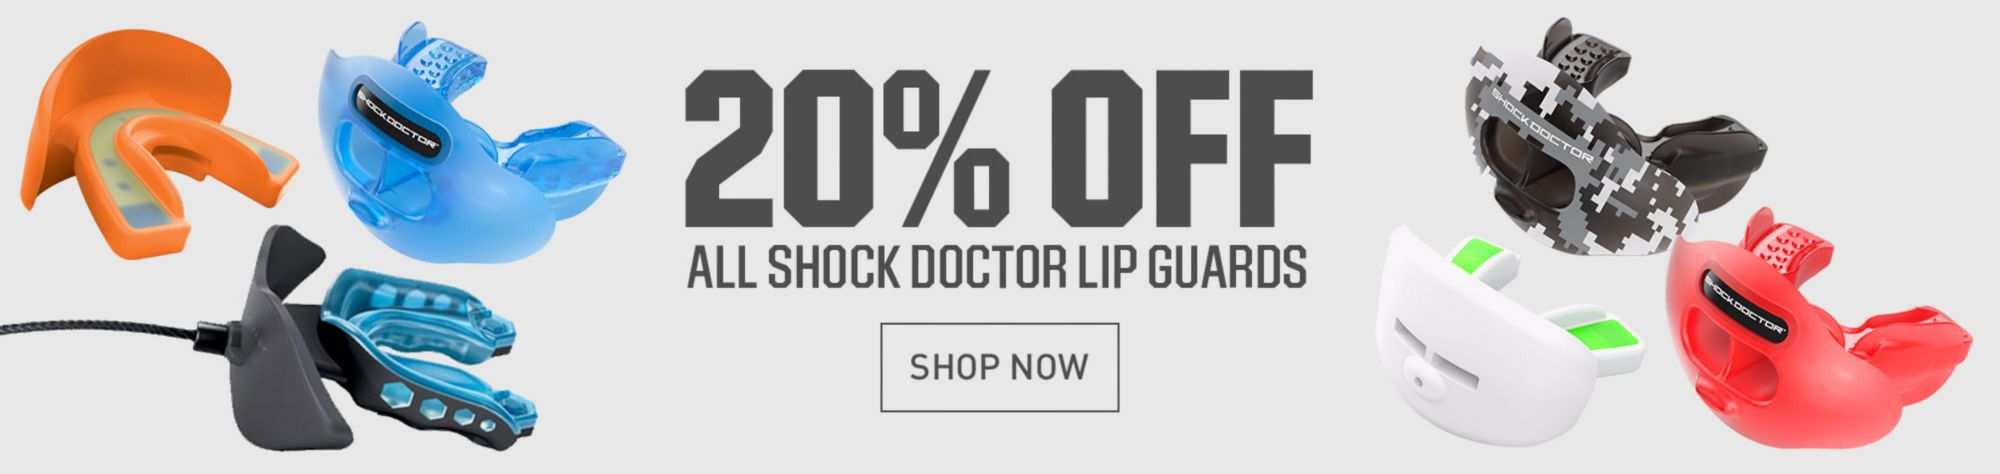 20% Off Shock Doctor Lip Guards